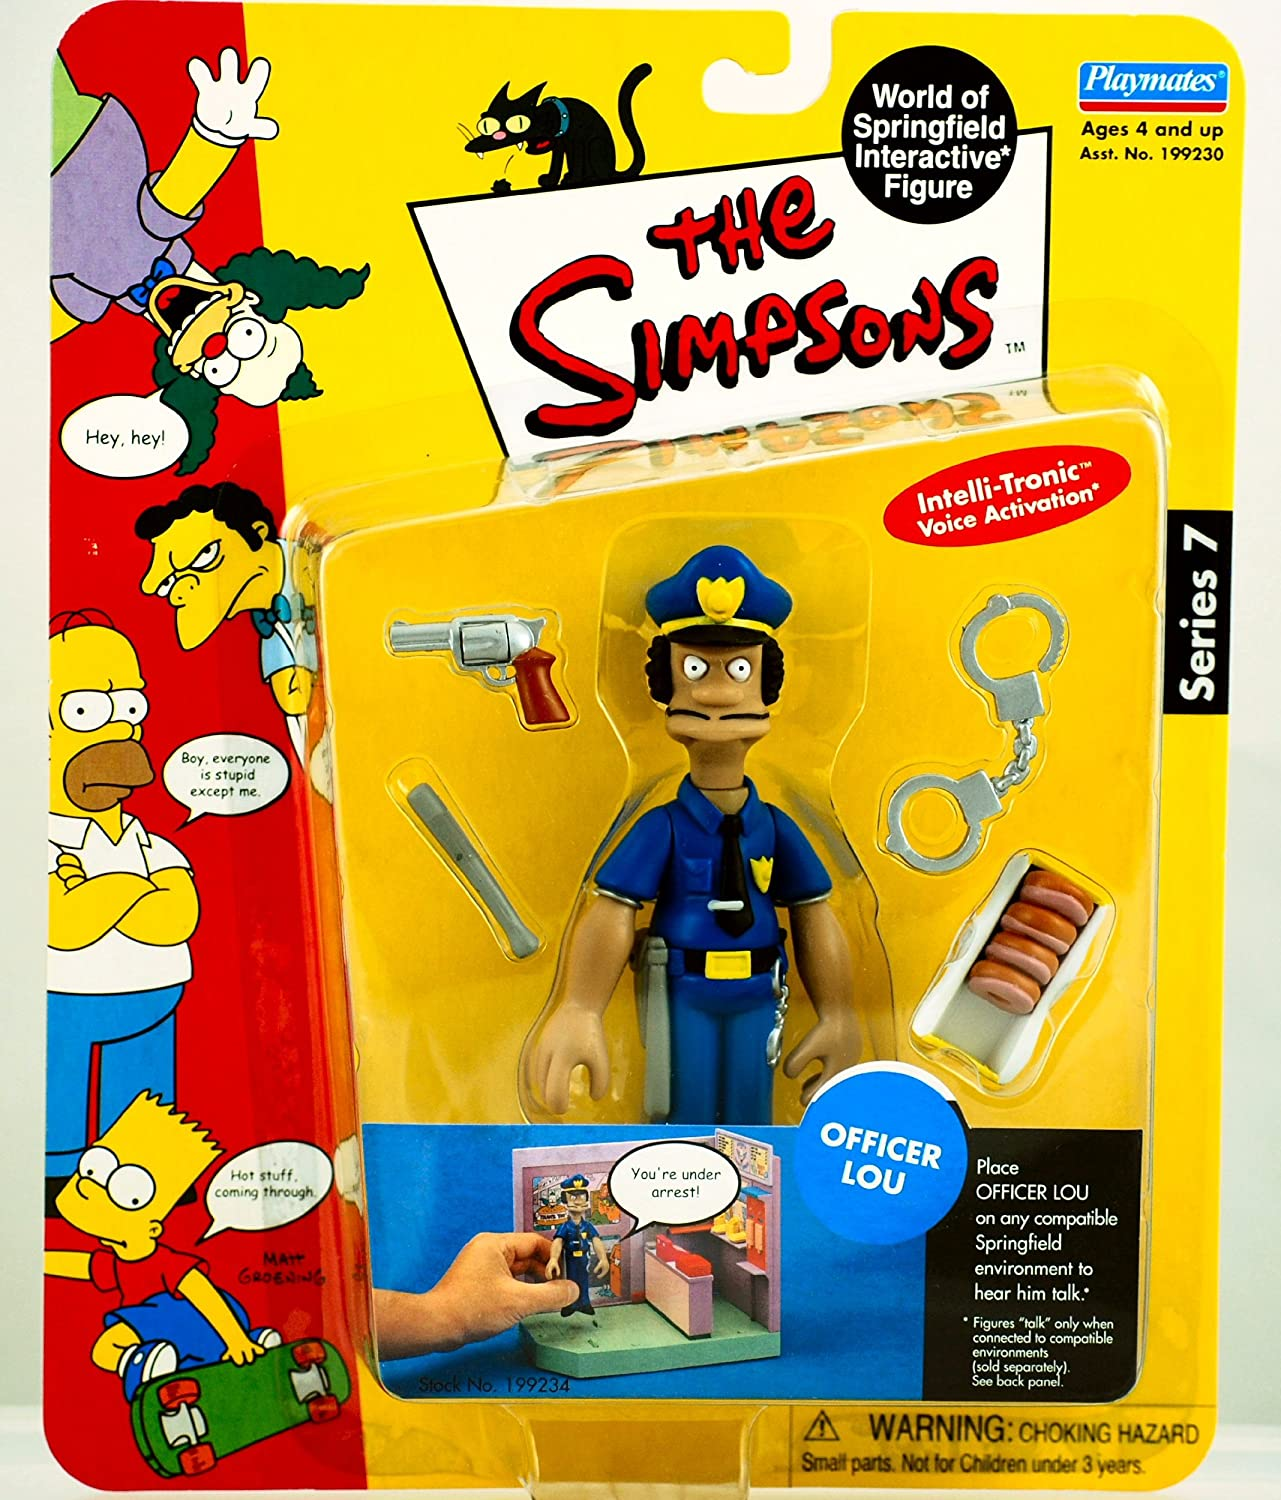 The Simpsons Series 7: Officer Lou Action Figure by Playmates Toys (English Manual)https://amzn.to/34O9Iea